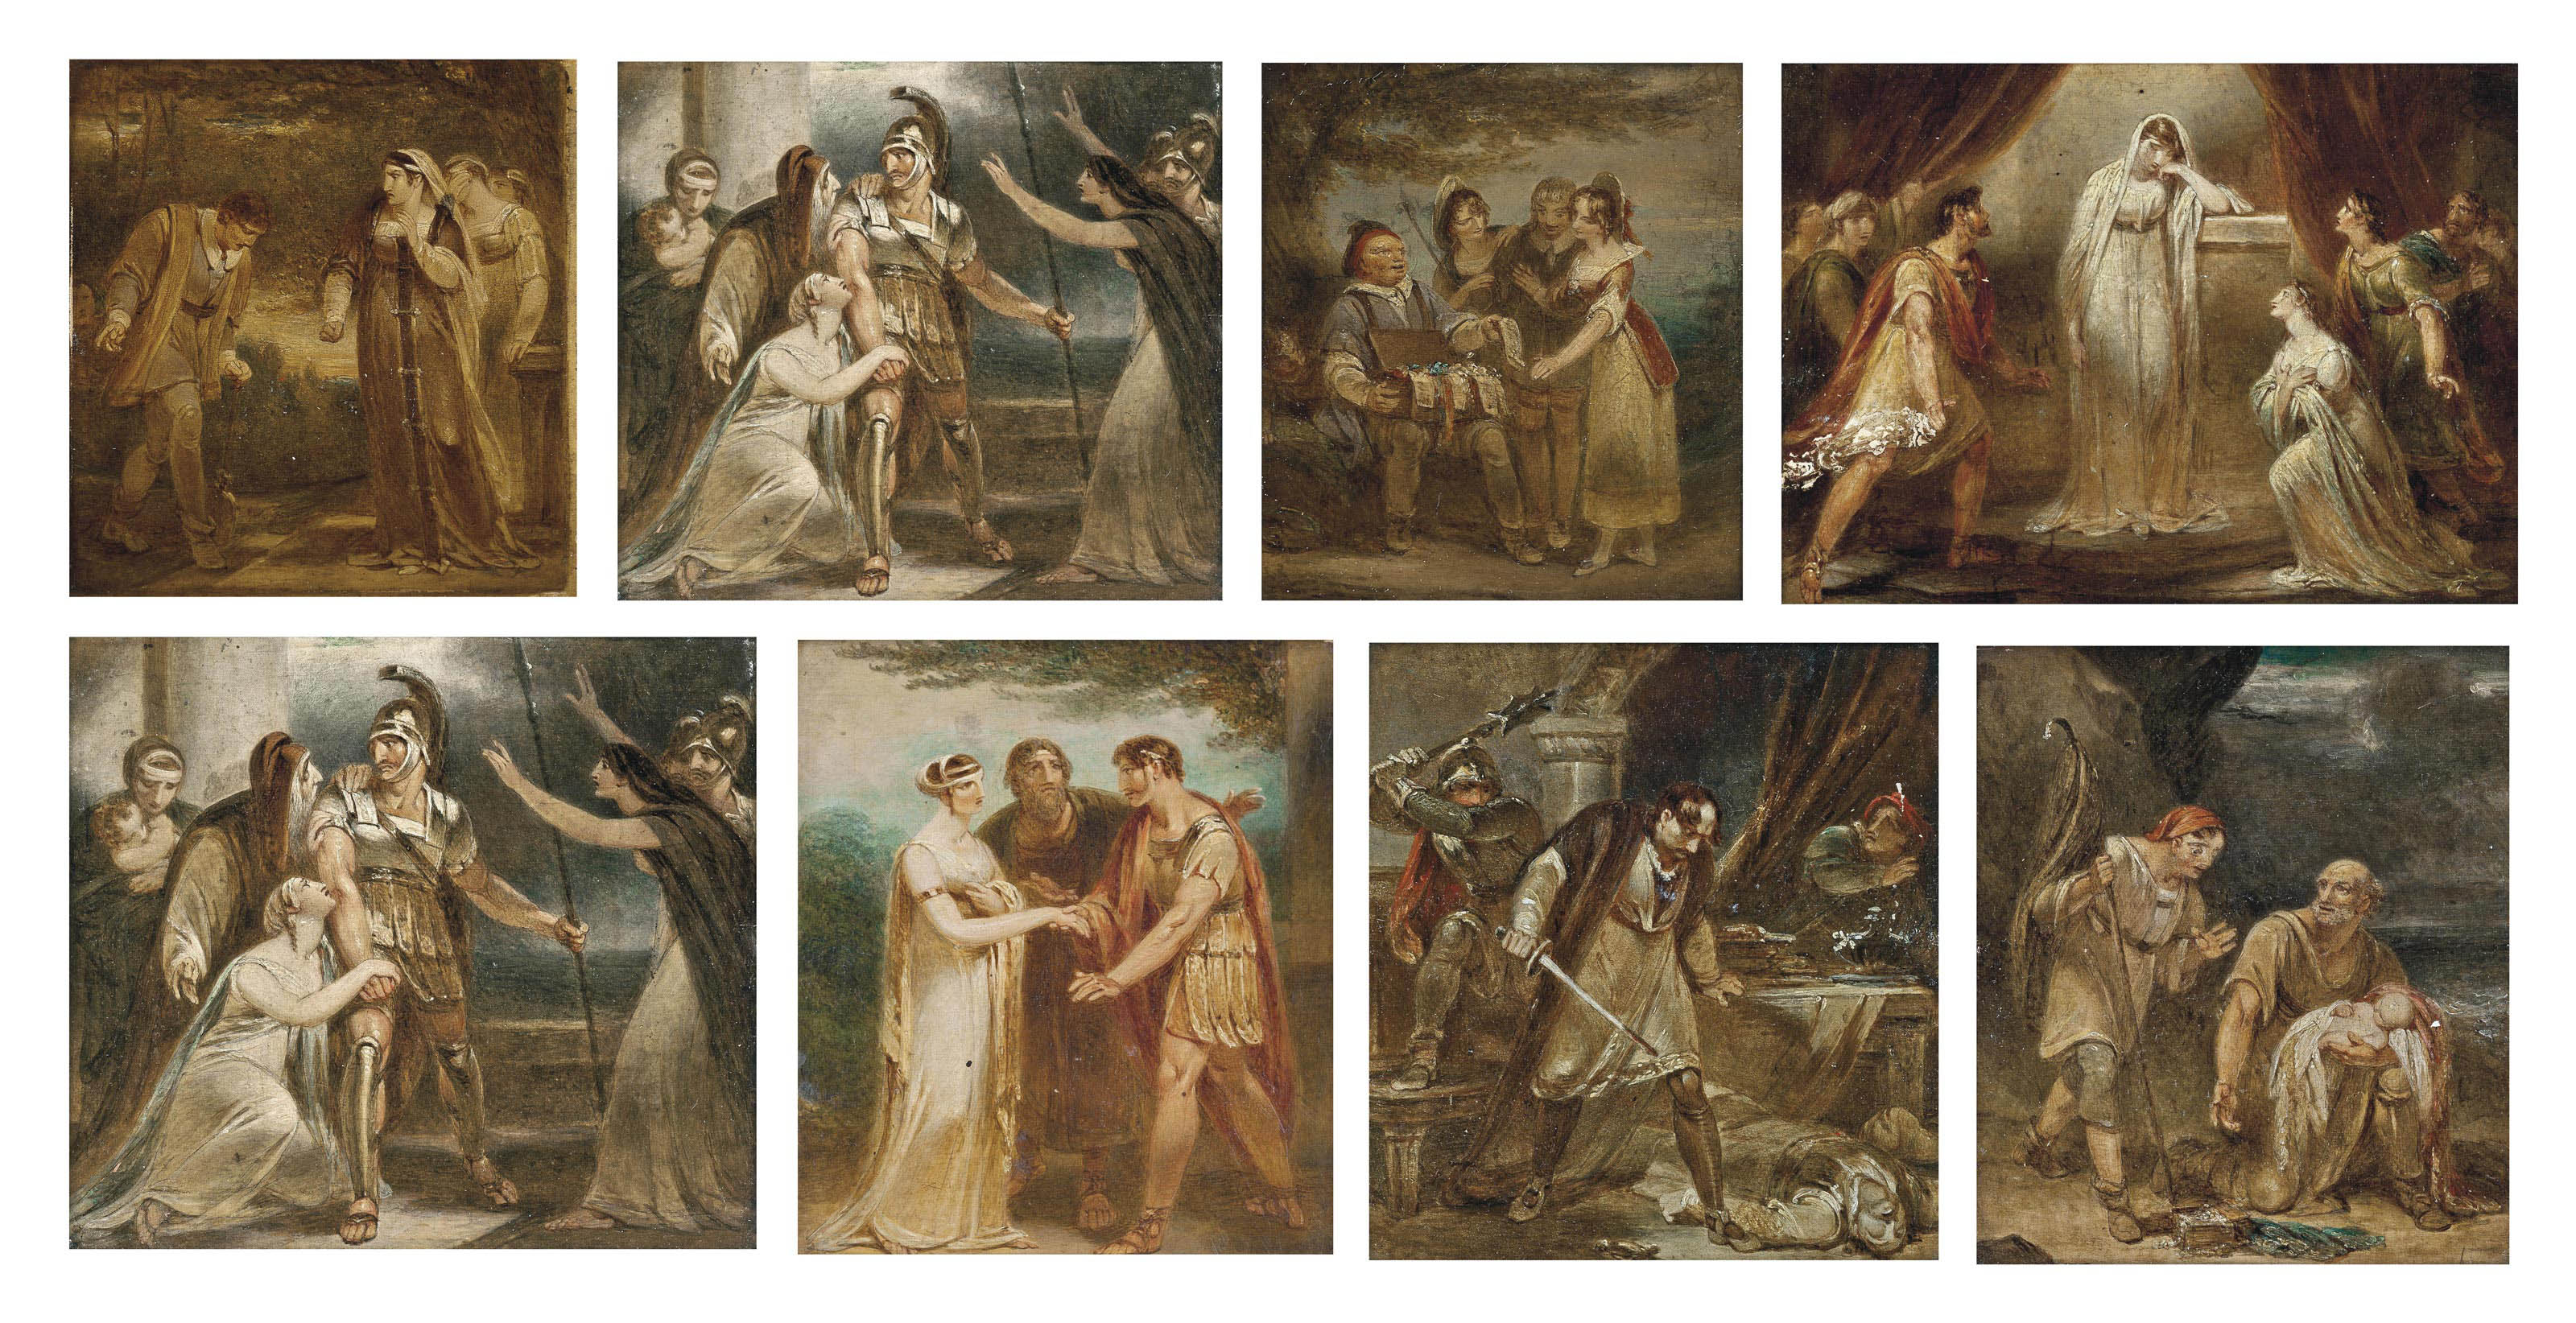 Eight scenes from Shakespeare's Coriolamis and The Winter's Tale